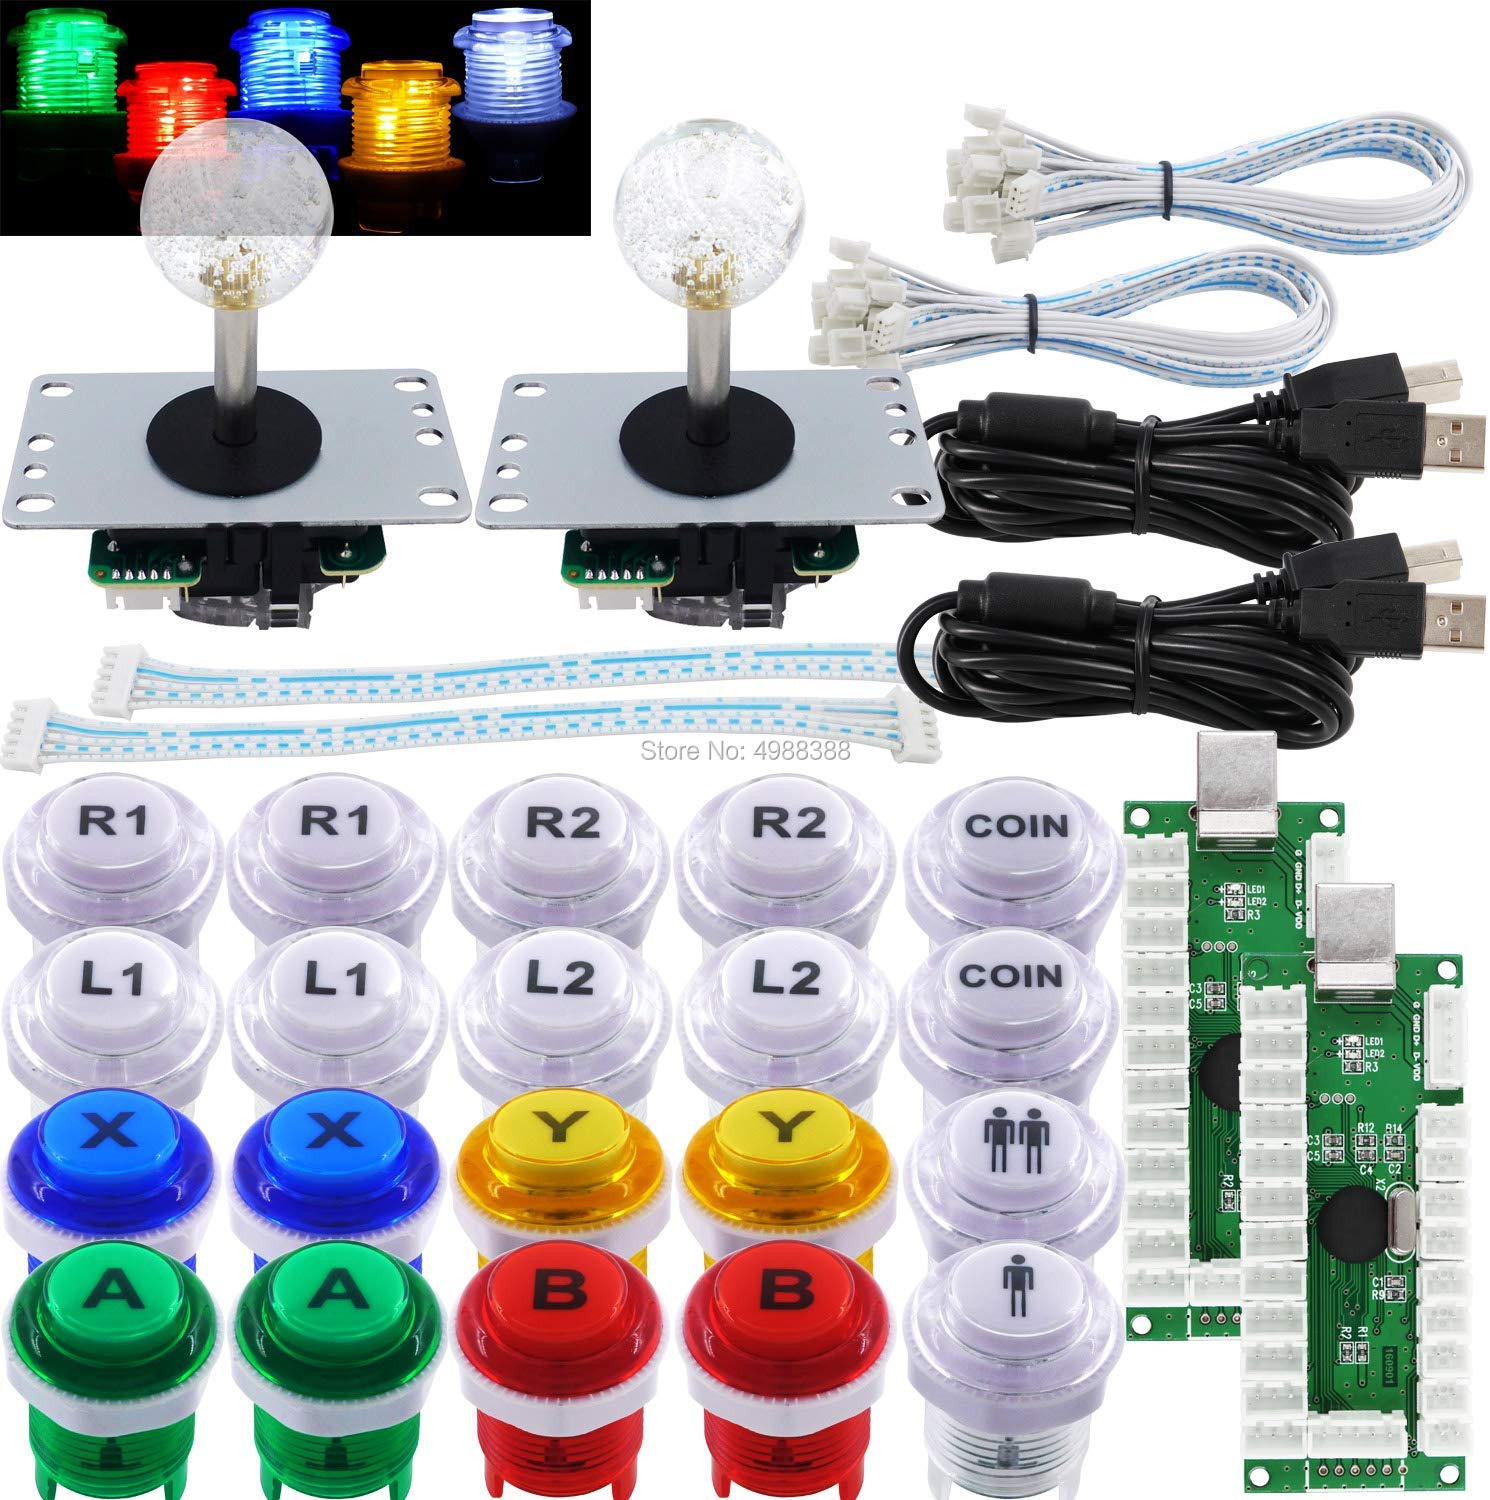 Arcade Joystick 2 Player DIY Kit LED Buttons Microswitch 8 Way Joystick USB Encoder Cable For PC MAME Raspberry Pi